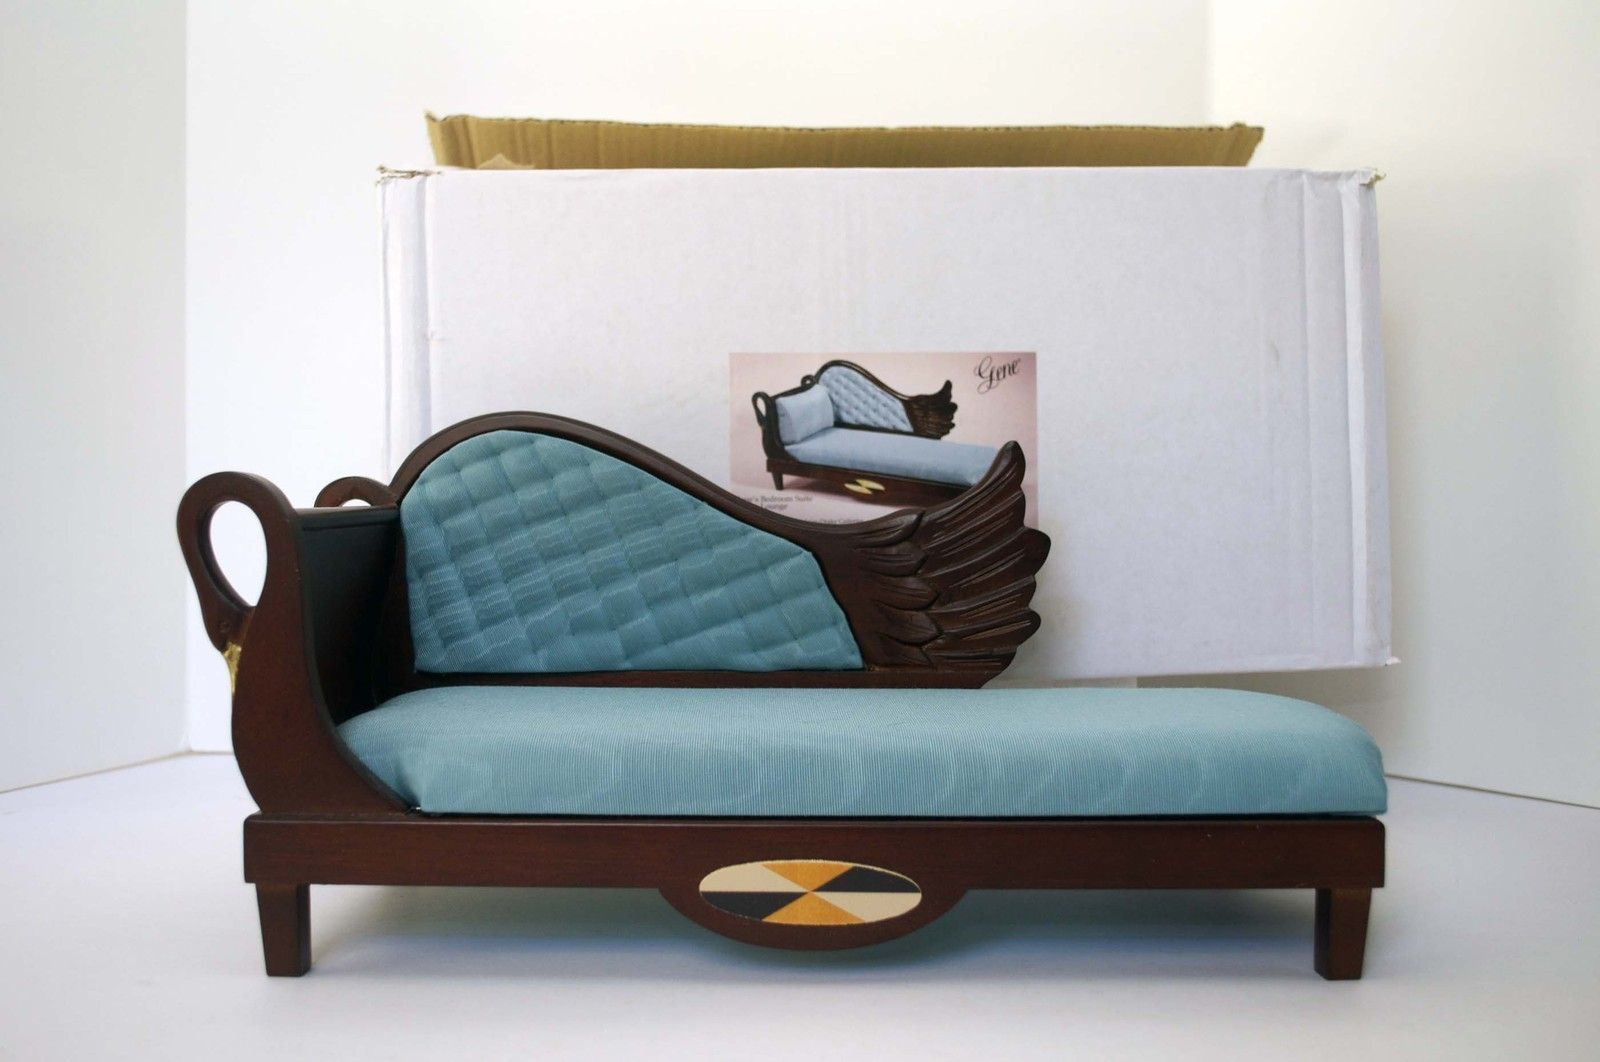 Möbel Marshall gene marshall doll blue swan bed chaise lounge furniture ashton